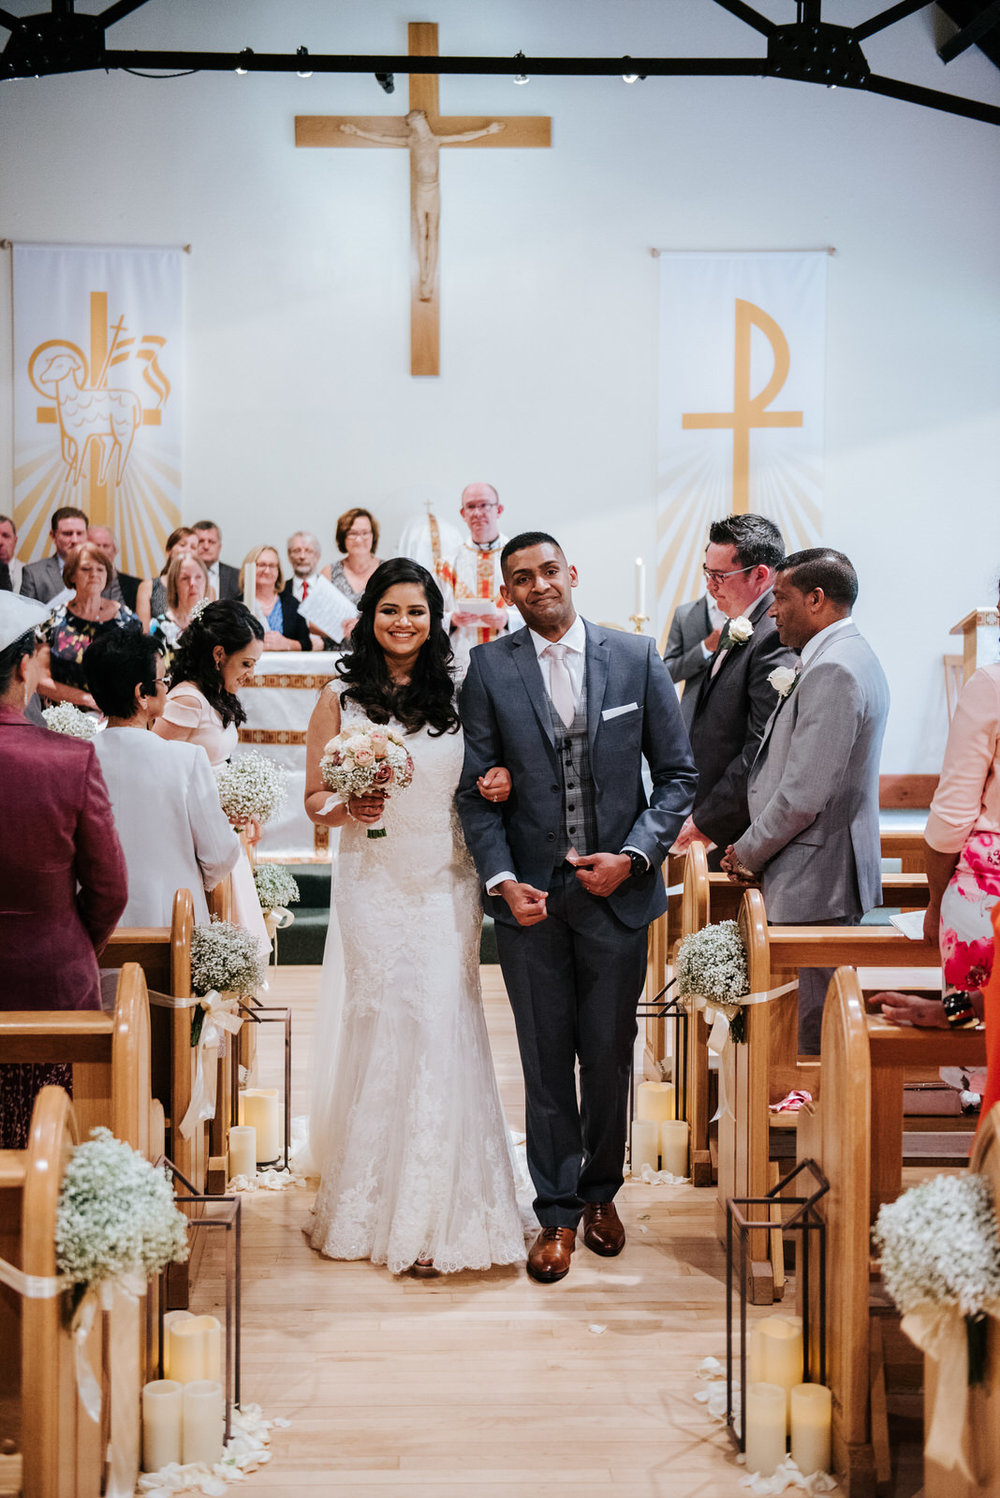 Bride and groom walk down the aisle at Woldingham School Chapel